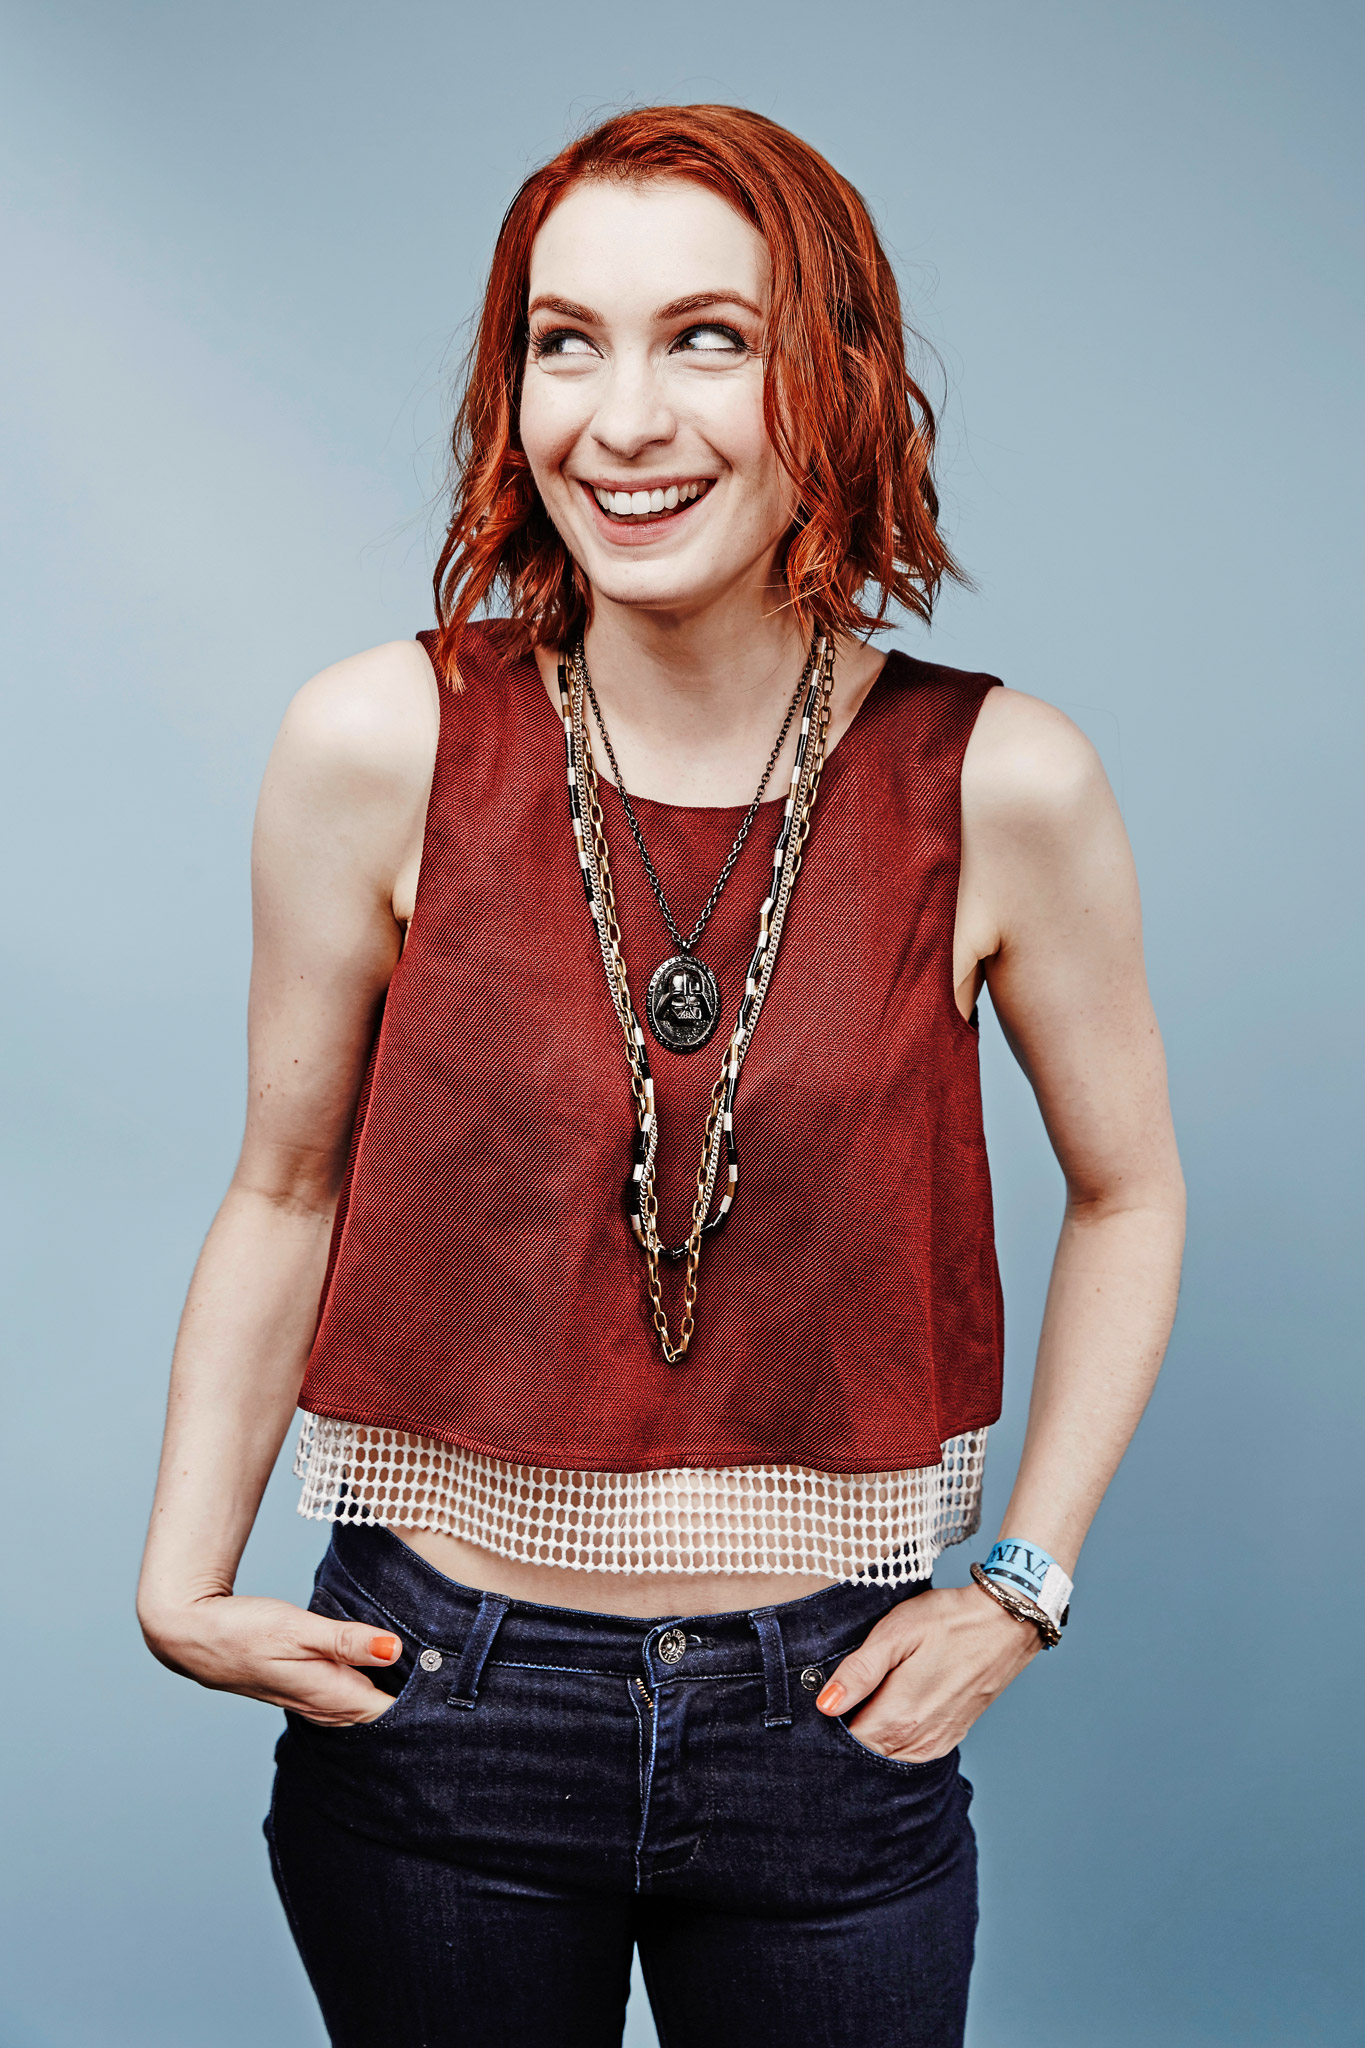 Felicia Day Backgrounds, Compatible - PC, Mobile, Gadgets| 1365x2048 px